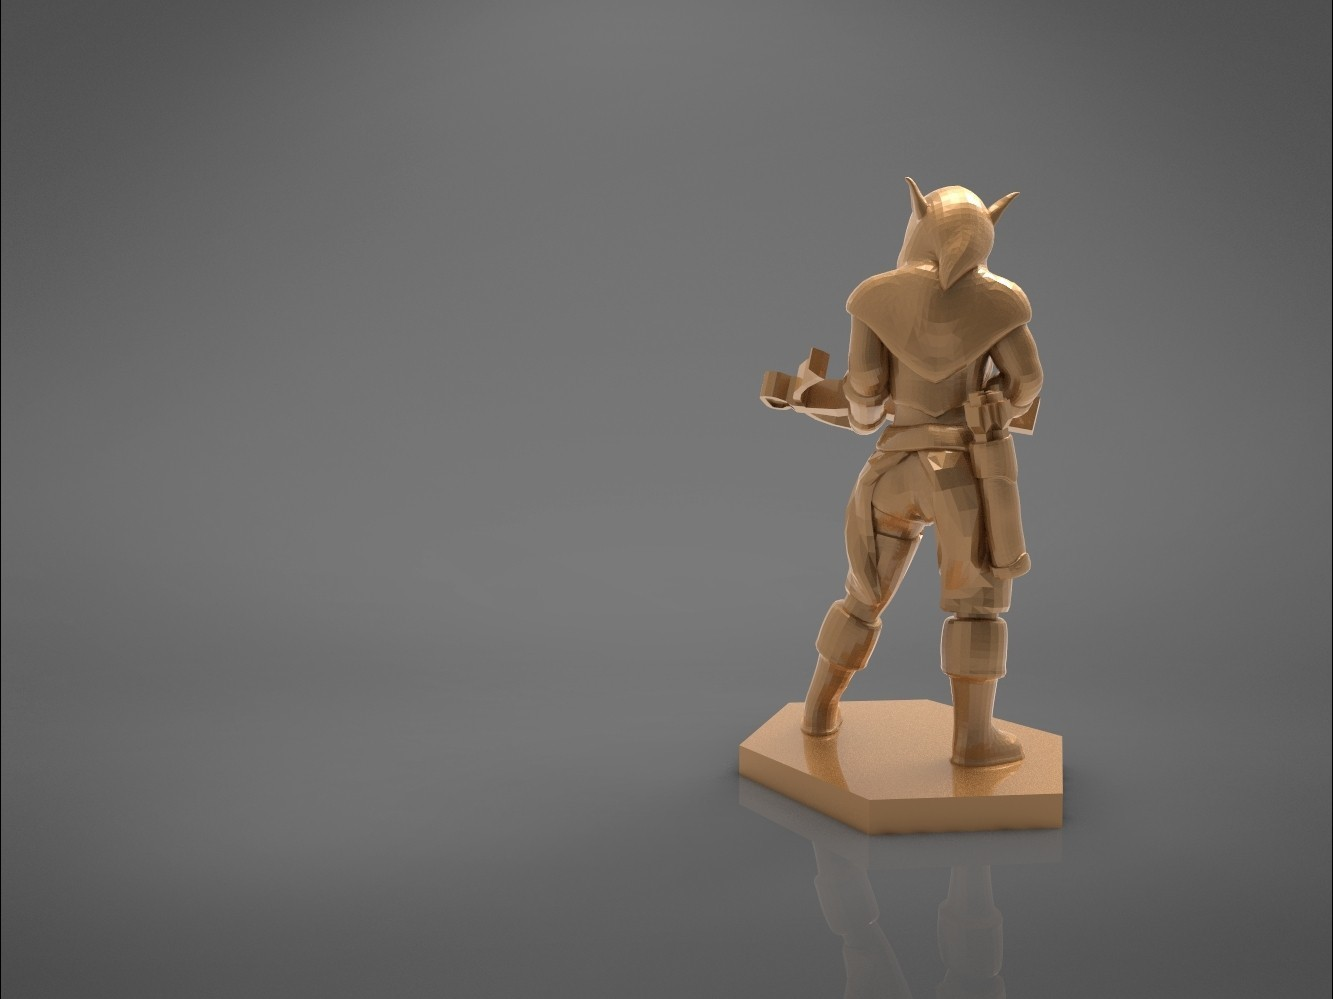 female_ranger-main_render_2.534.jpg Download STL file ELF RANGER FEMALE CHARACTER GAME FIGURES 3D print model • 3D printing object, 3D-mon